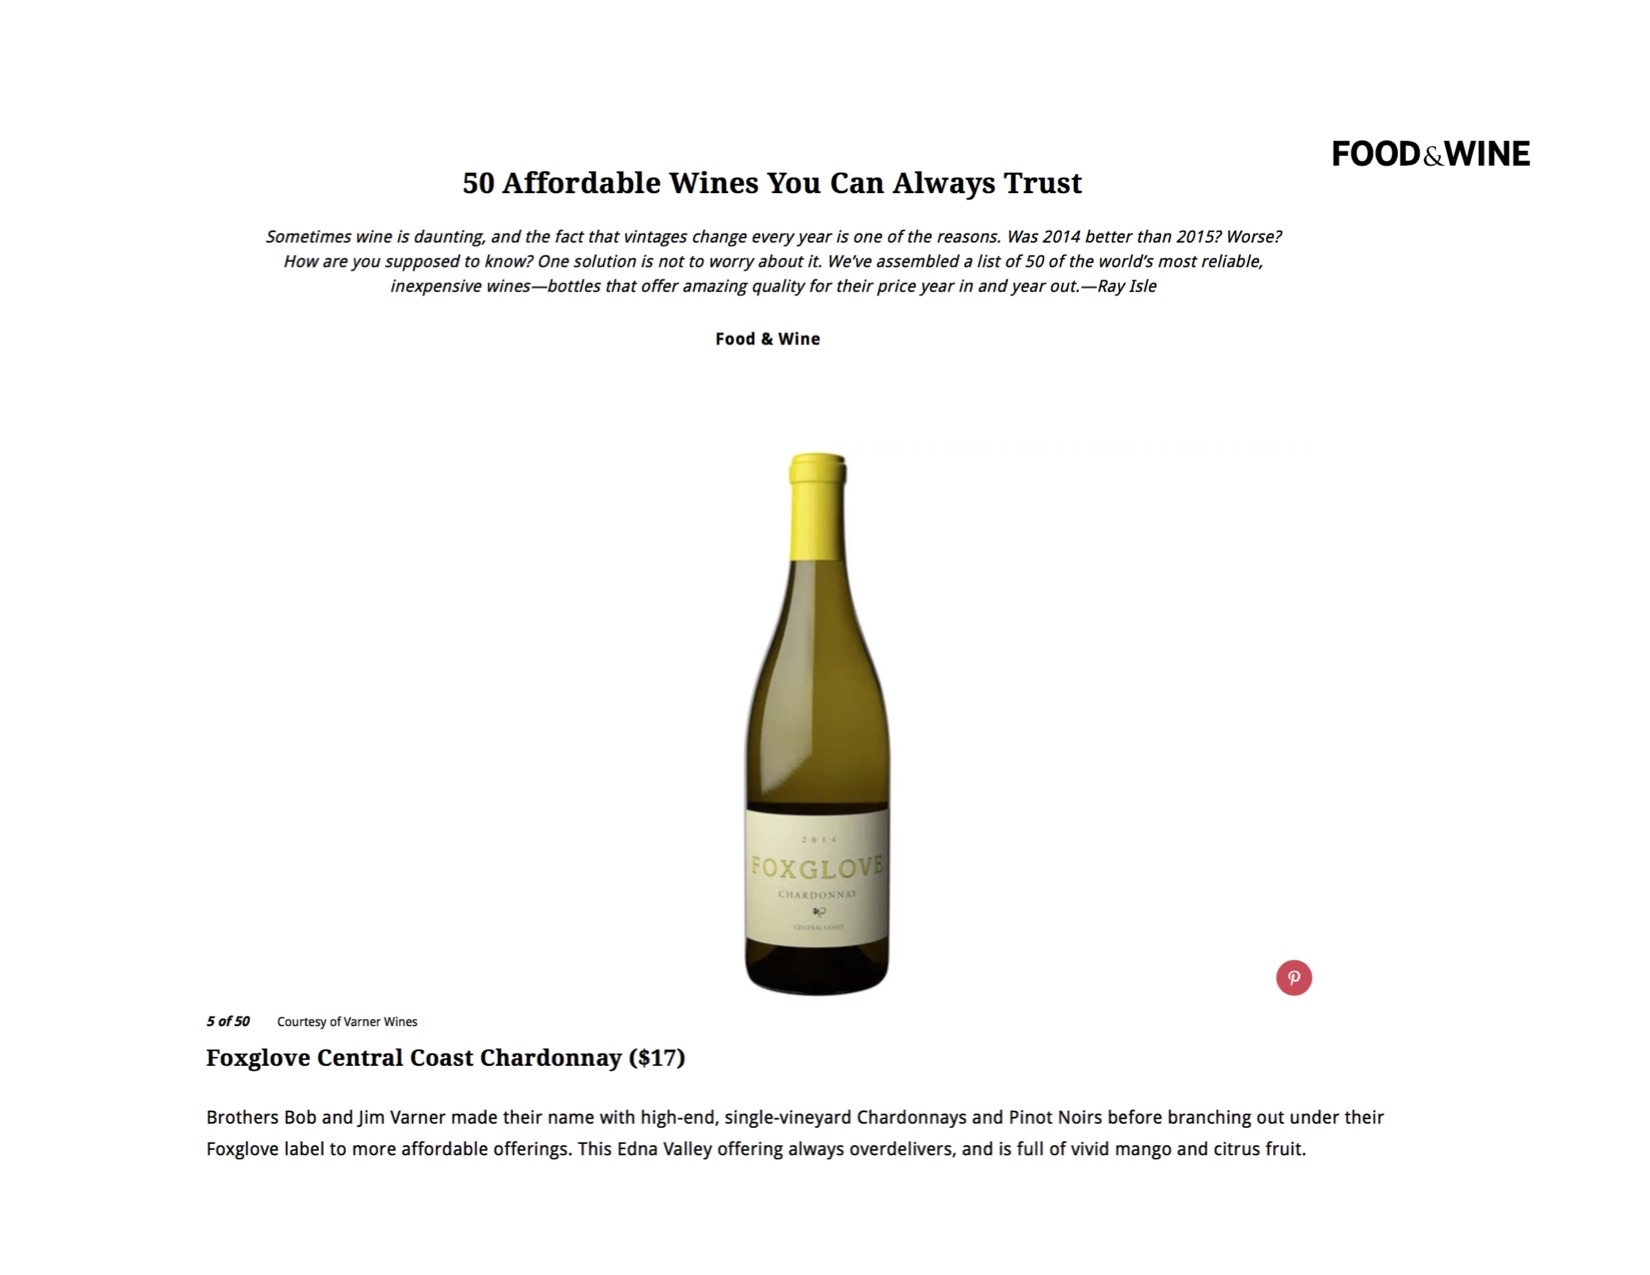 Food & Wine 50 Affordable Chardonnay.jpg